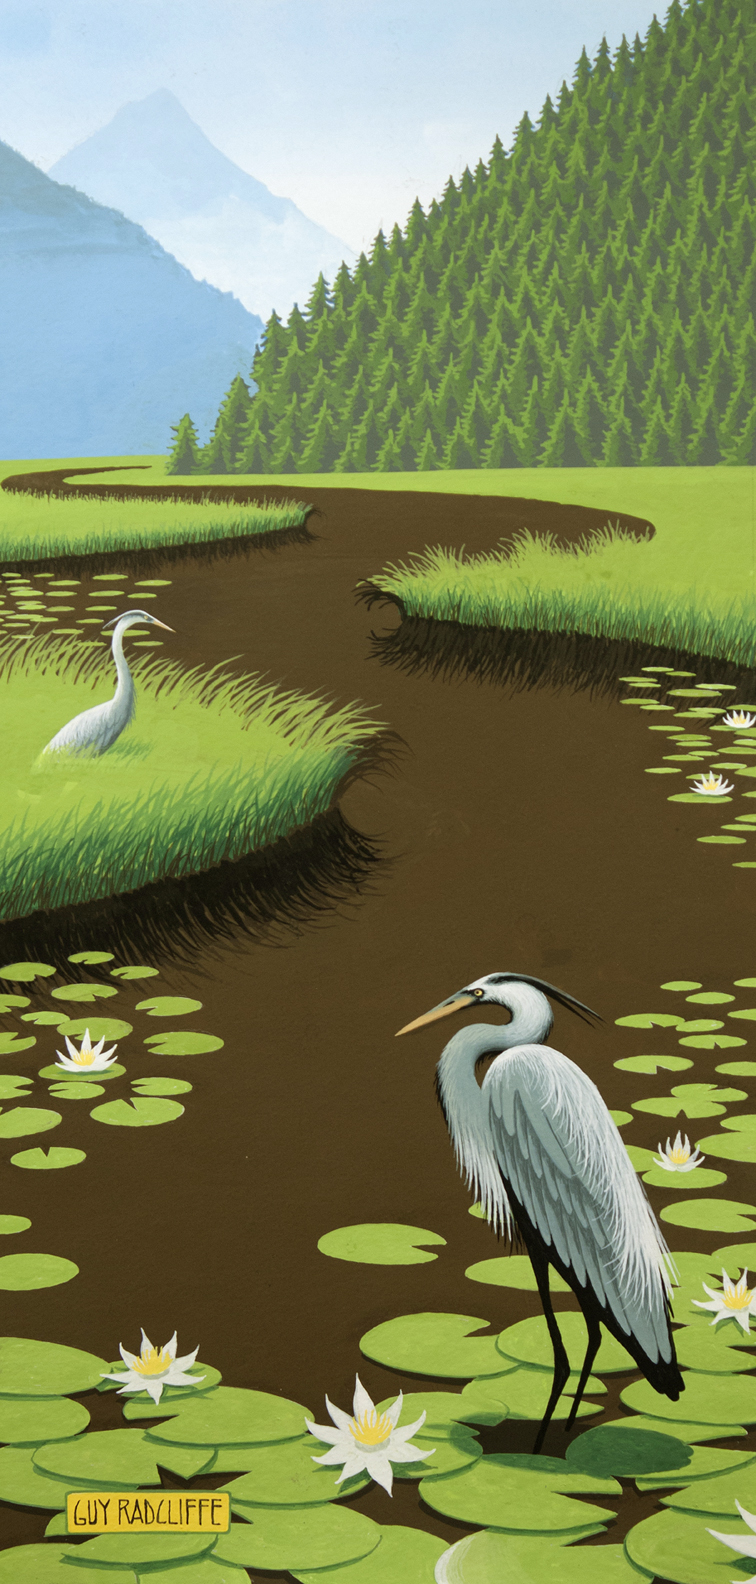 20496922-GuyRadcliffe_Blue_Herons_And_Lily_Pads_Gouache_11x12_1500.jpg